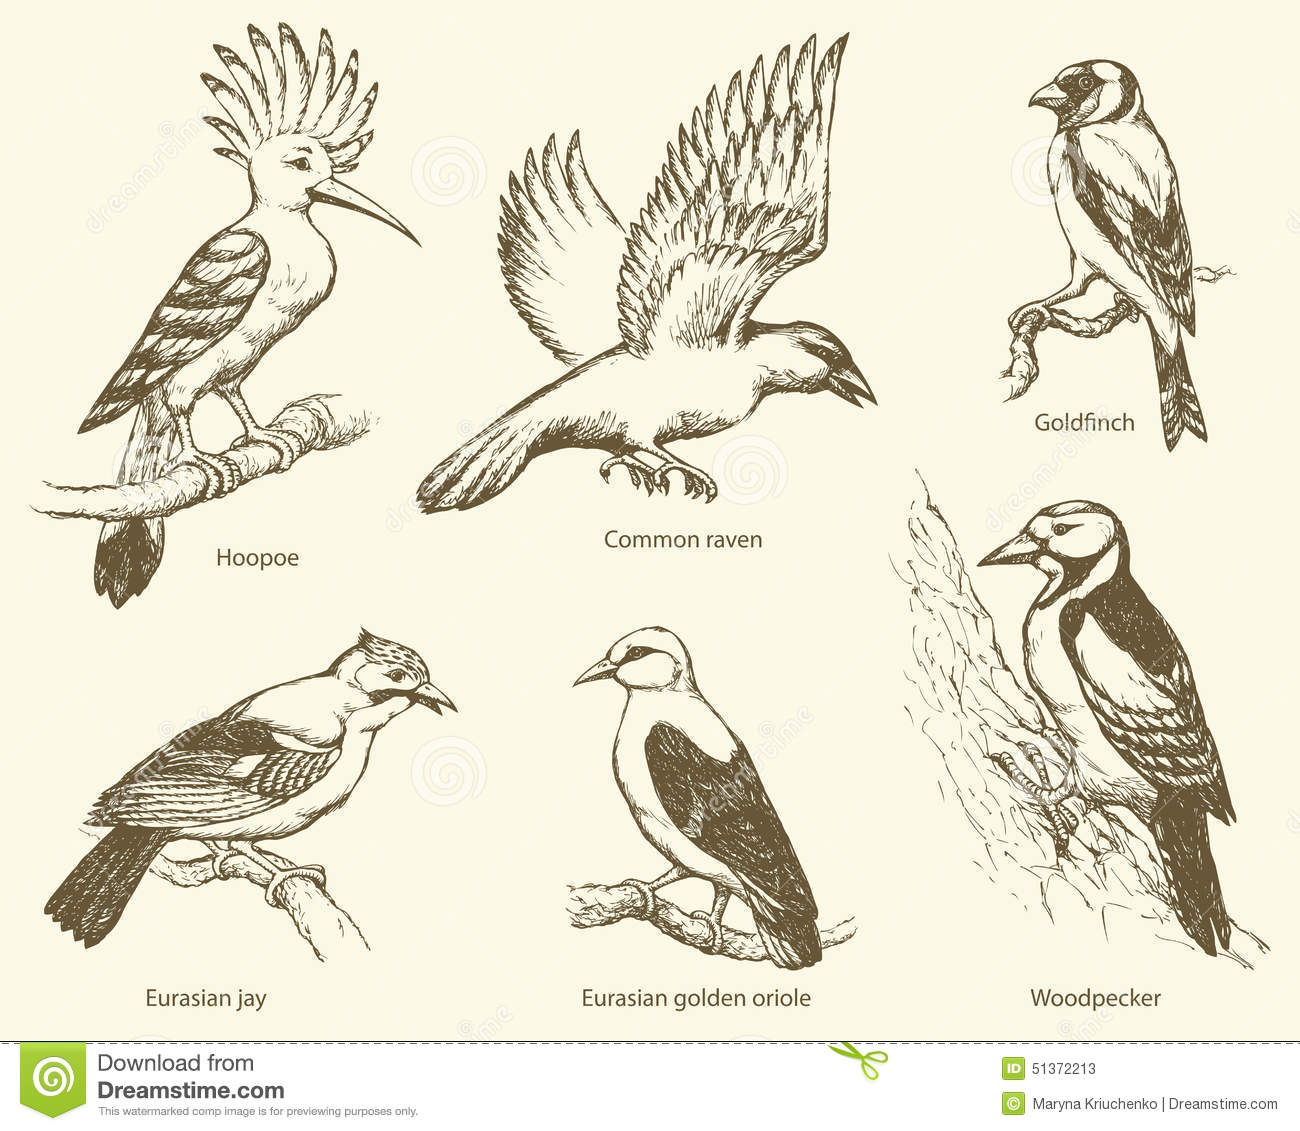 essay on hoopoe bird Hoopoes are colourful birds found across afro-eurasia, notable for their  distinctive crown of feathers three living and one extinct species are  recognized,.